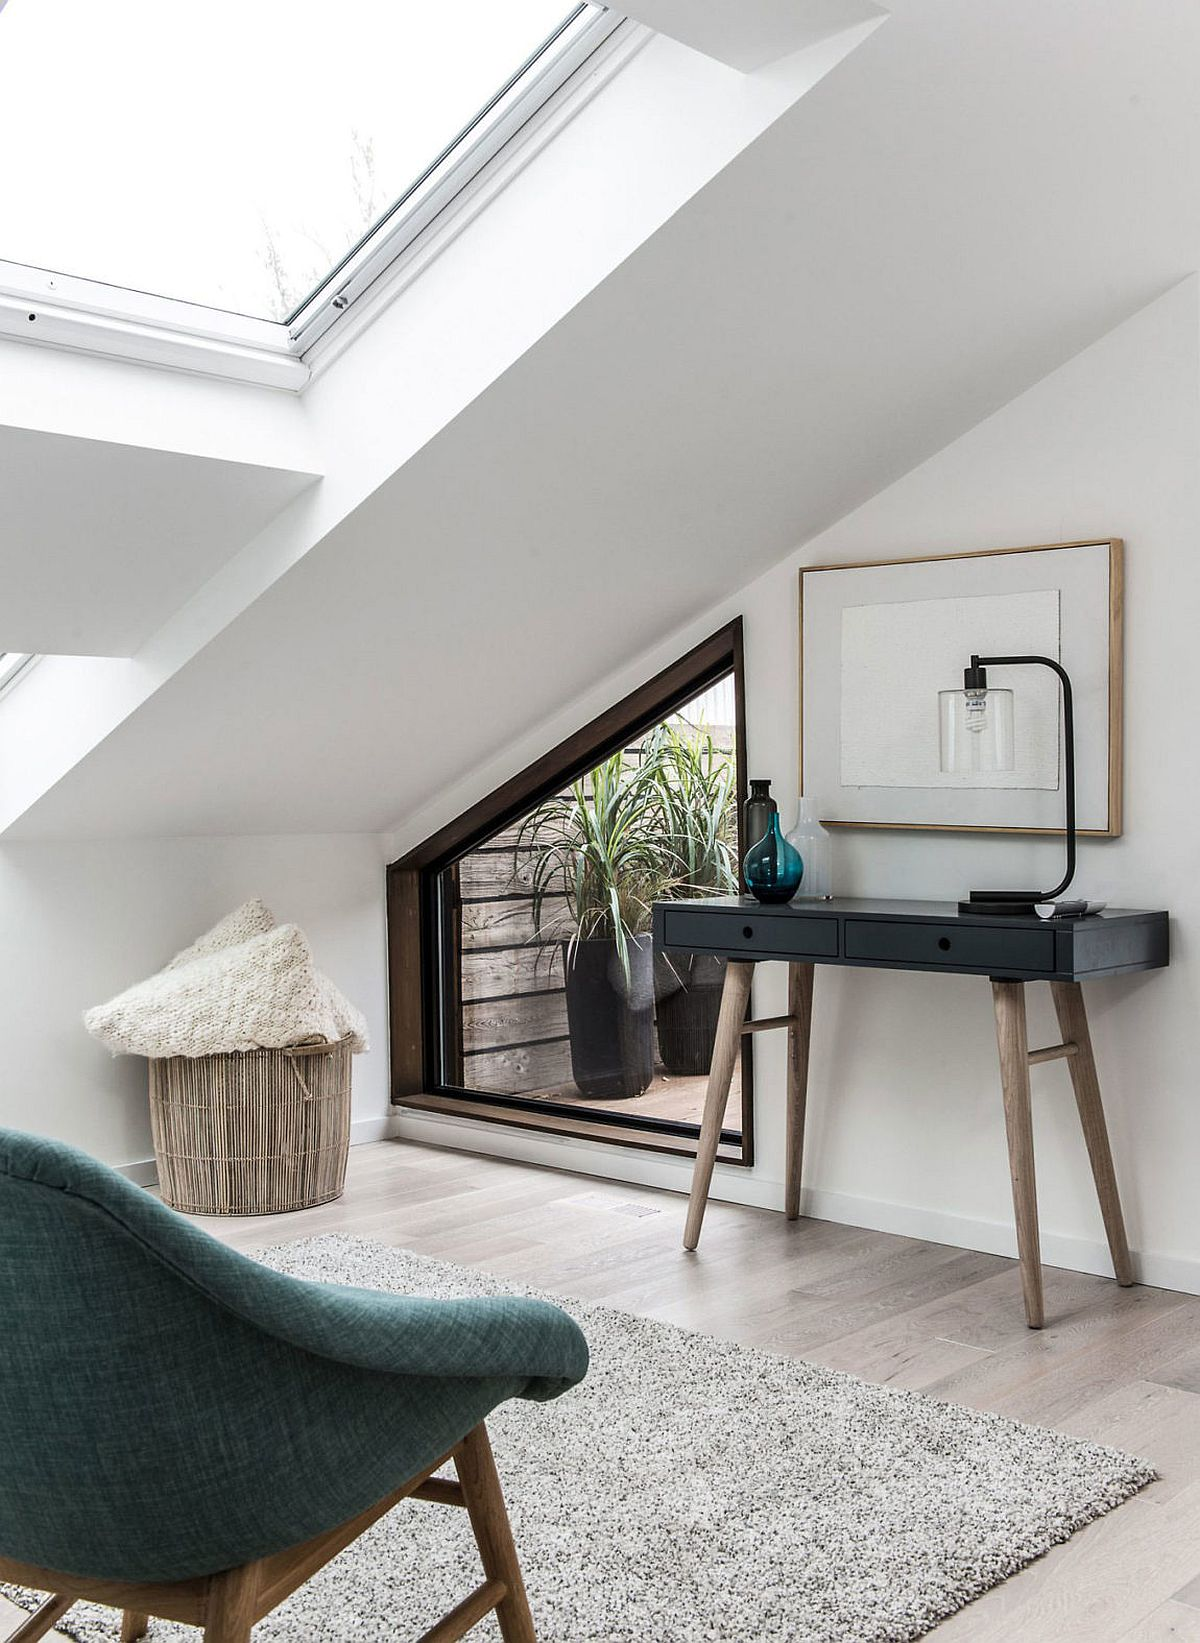 Slanted bedroom ceiling with skylight